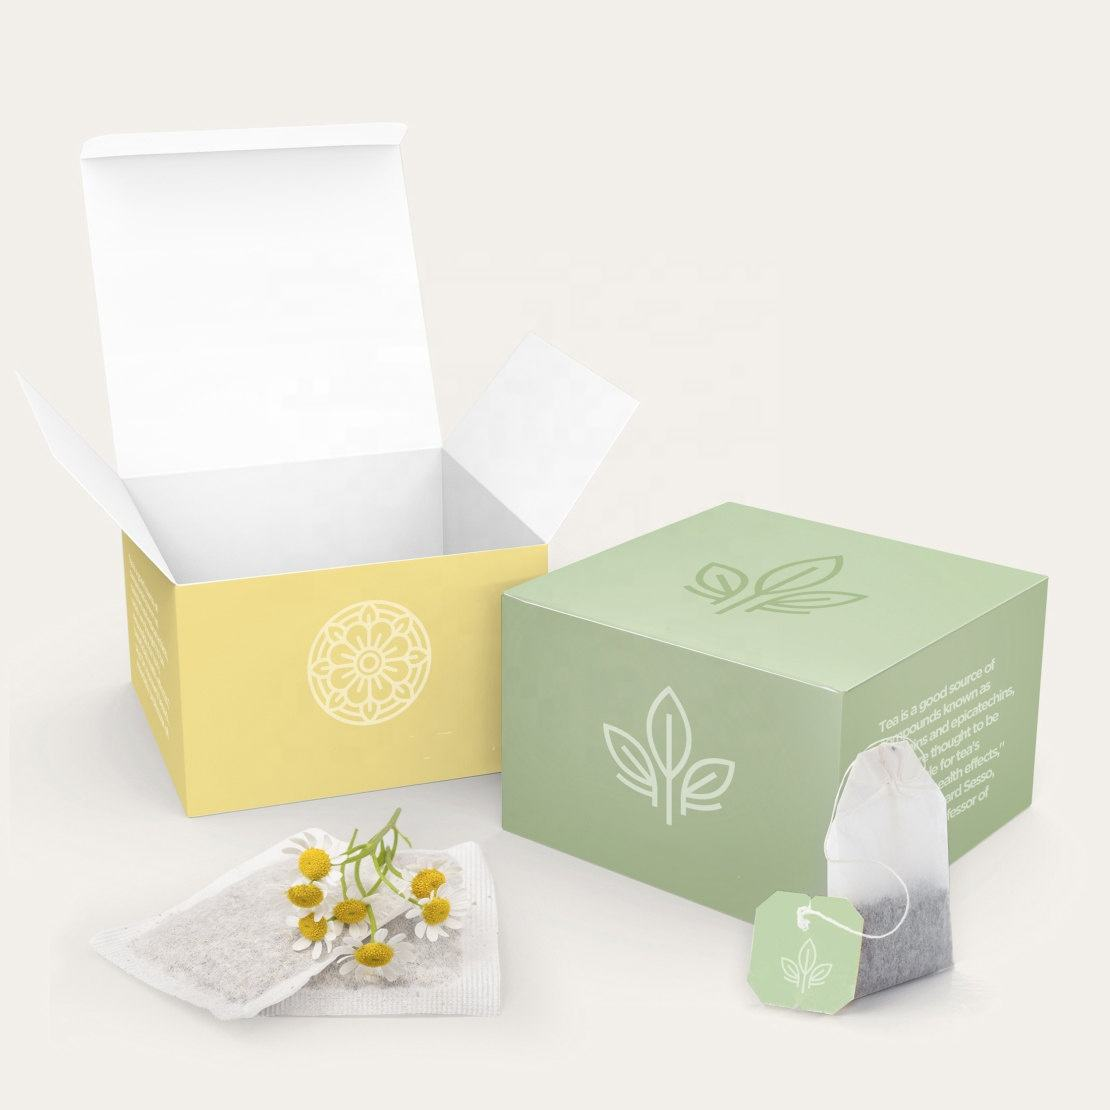 Fancy Design Art Paper Box Package With Colorful Printing For Tea Packaging